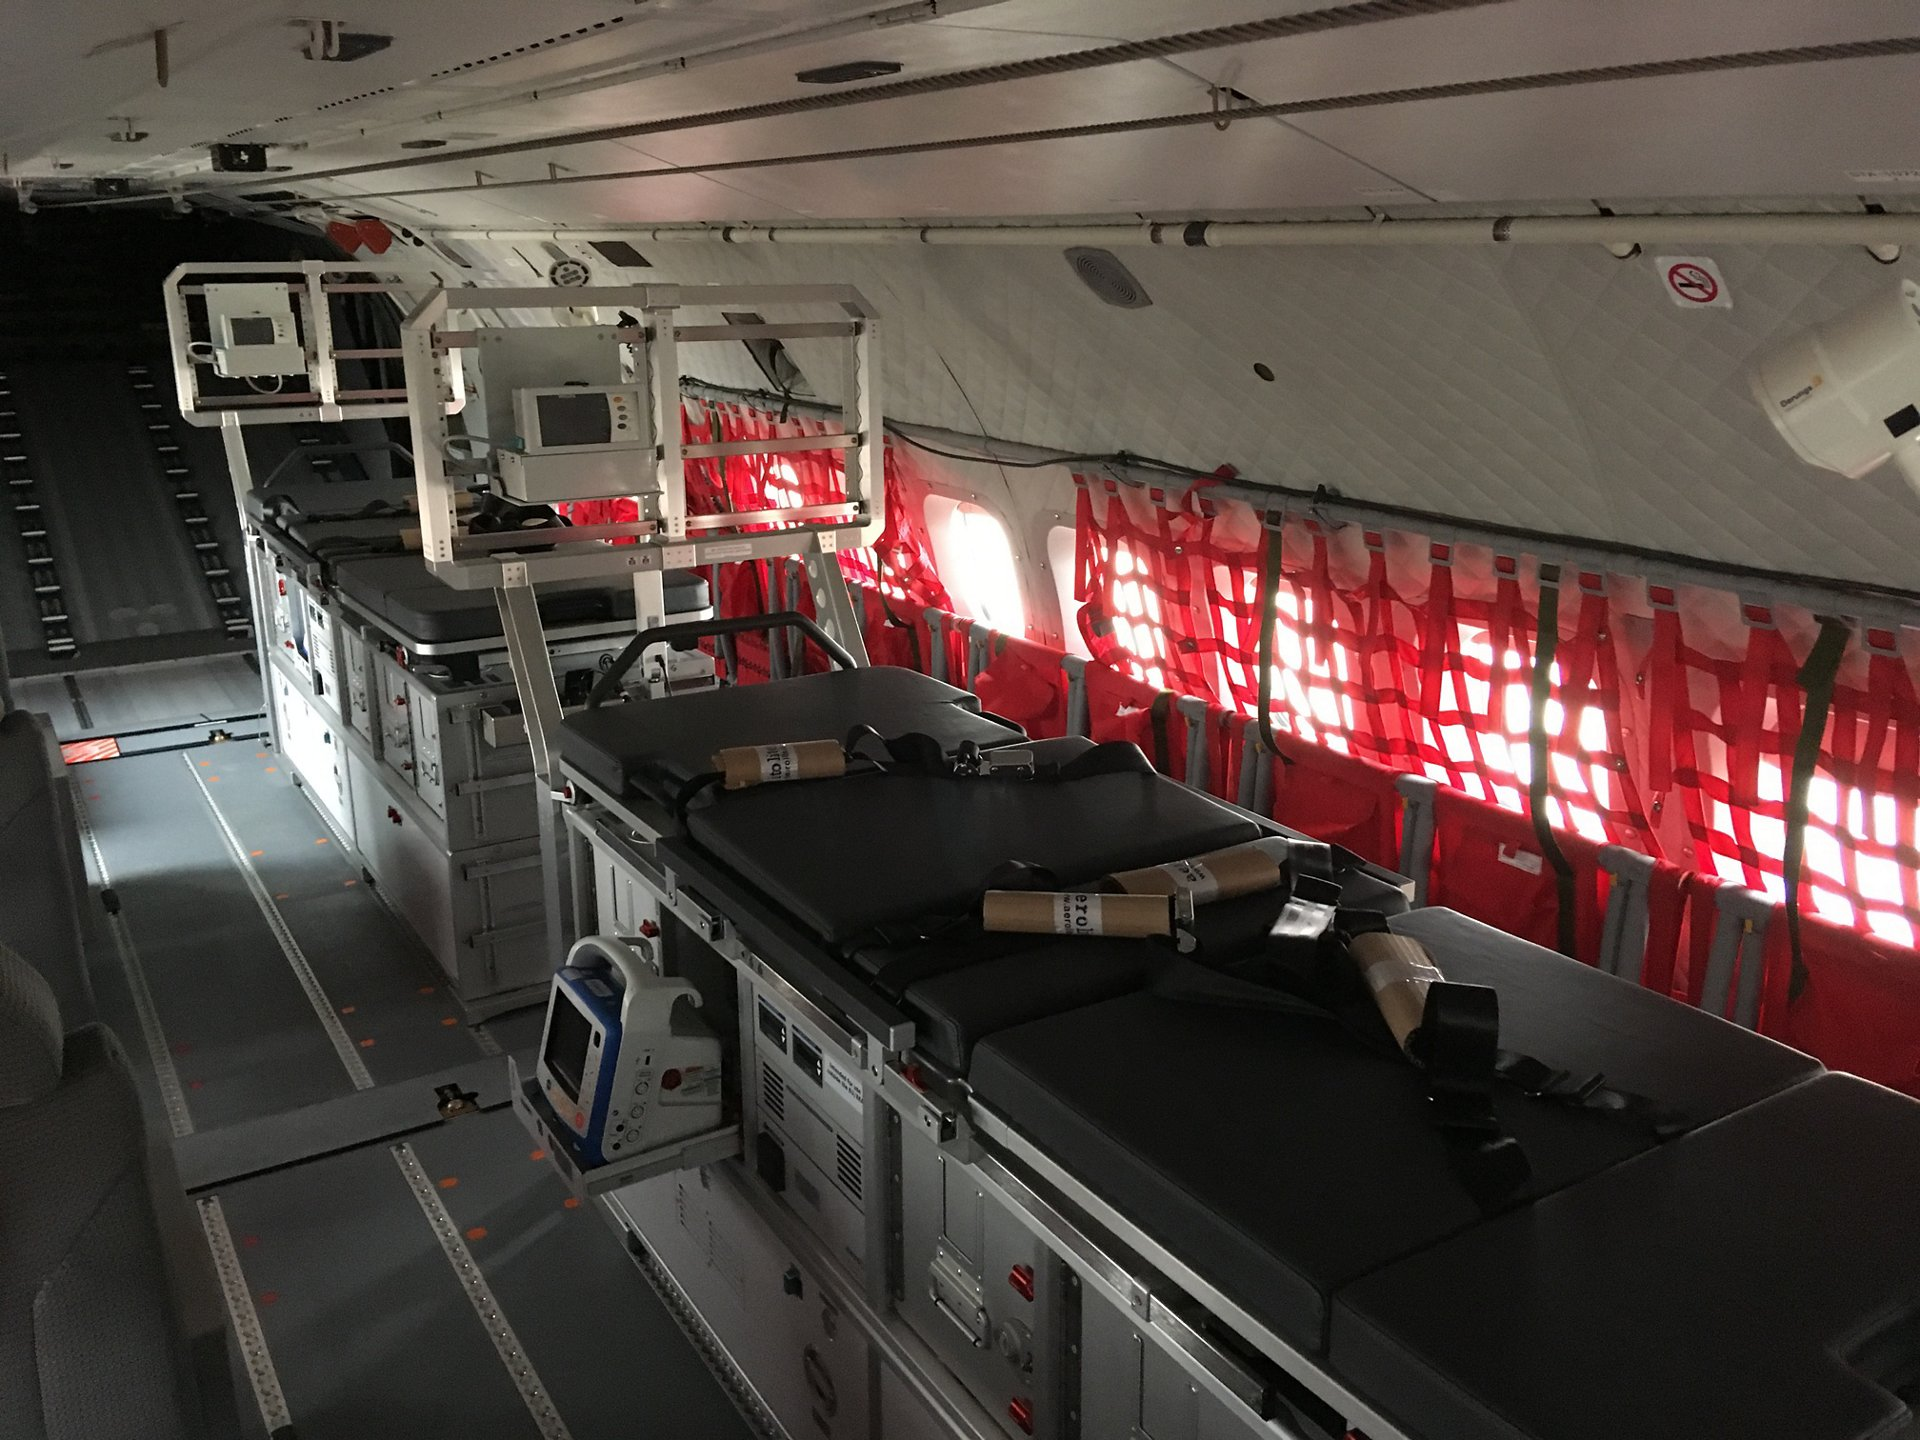 A view inside a medevac-configured Airbus C295 cabin, including stretchers and other medical equipment.